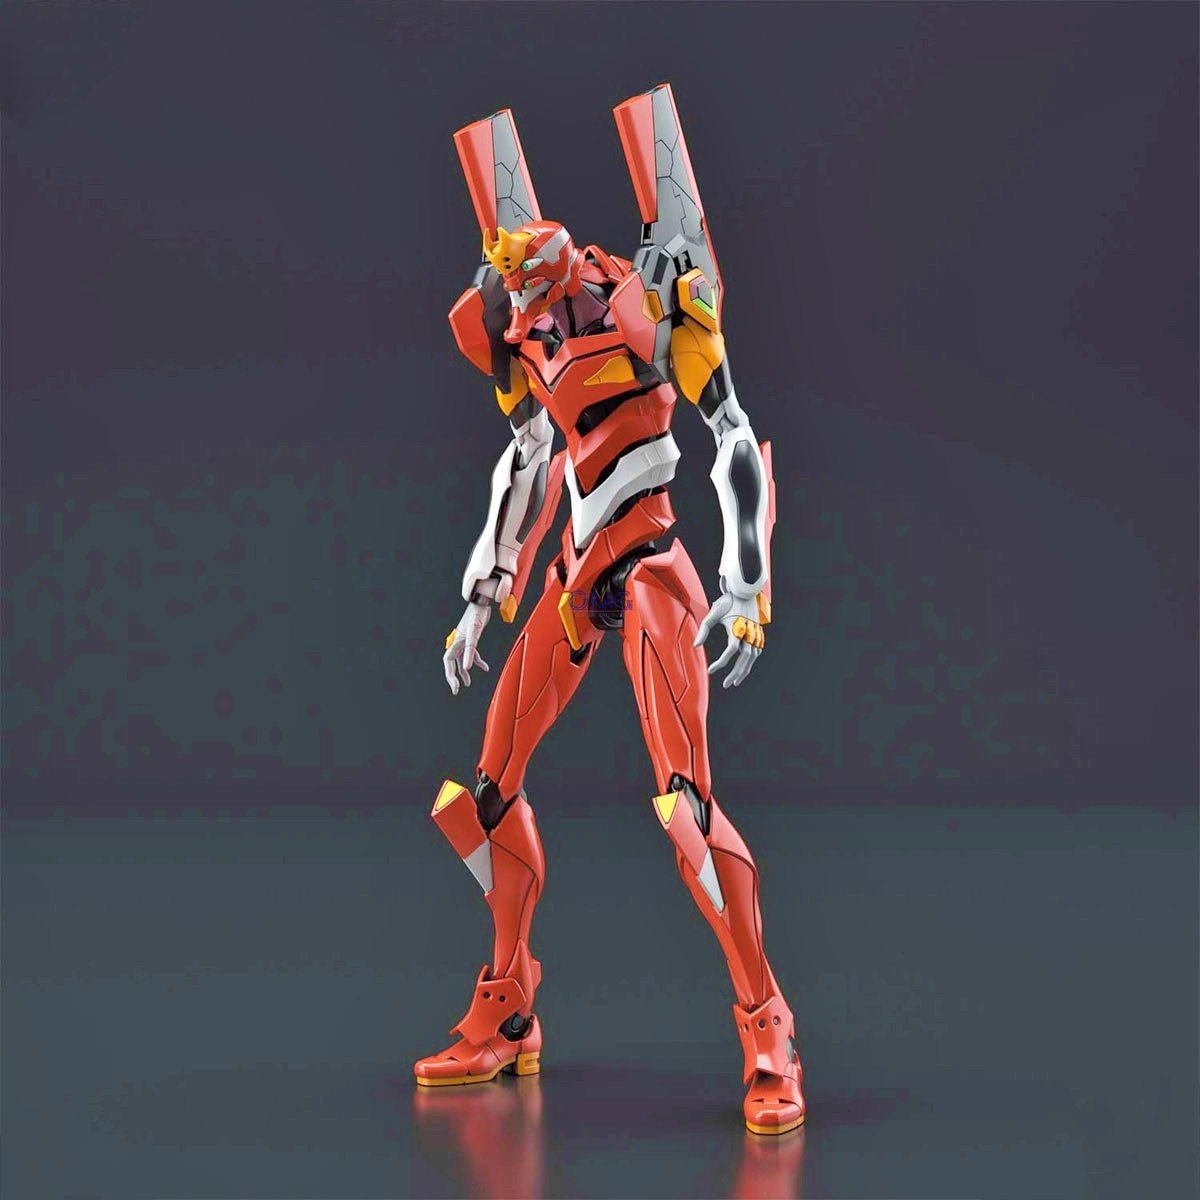 Bandai RG Multipurpose Humanoid Decisive Weapon, Artificial Human Evangelion Production Model-02 1.0.jpg